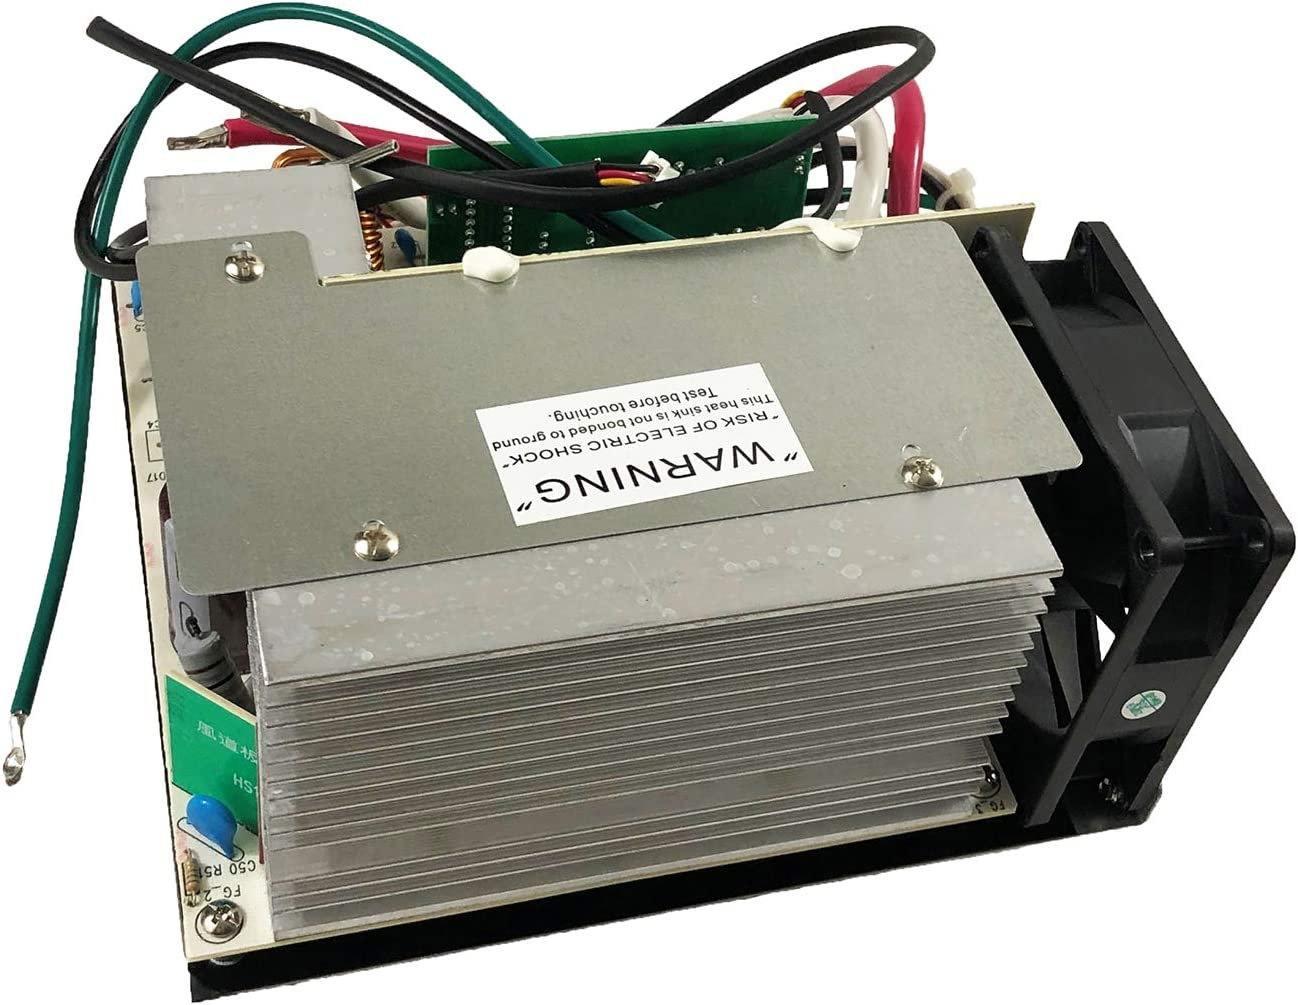 WFCO WF-9560-MBA Converter/Charger Main Board Assembly Replacement 60A DC Output